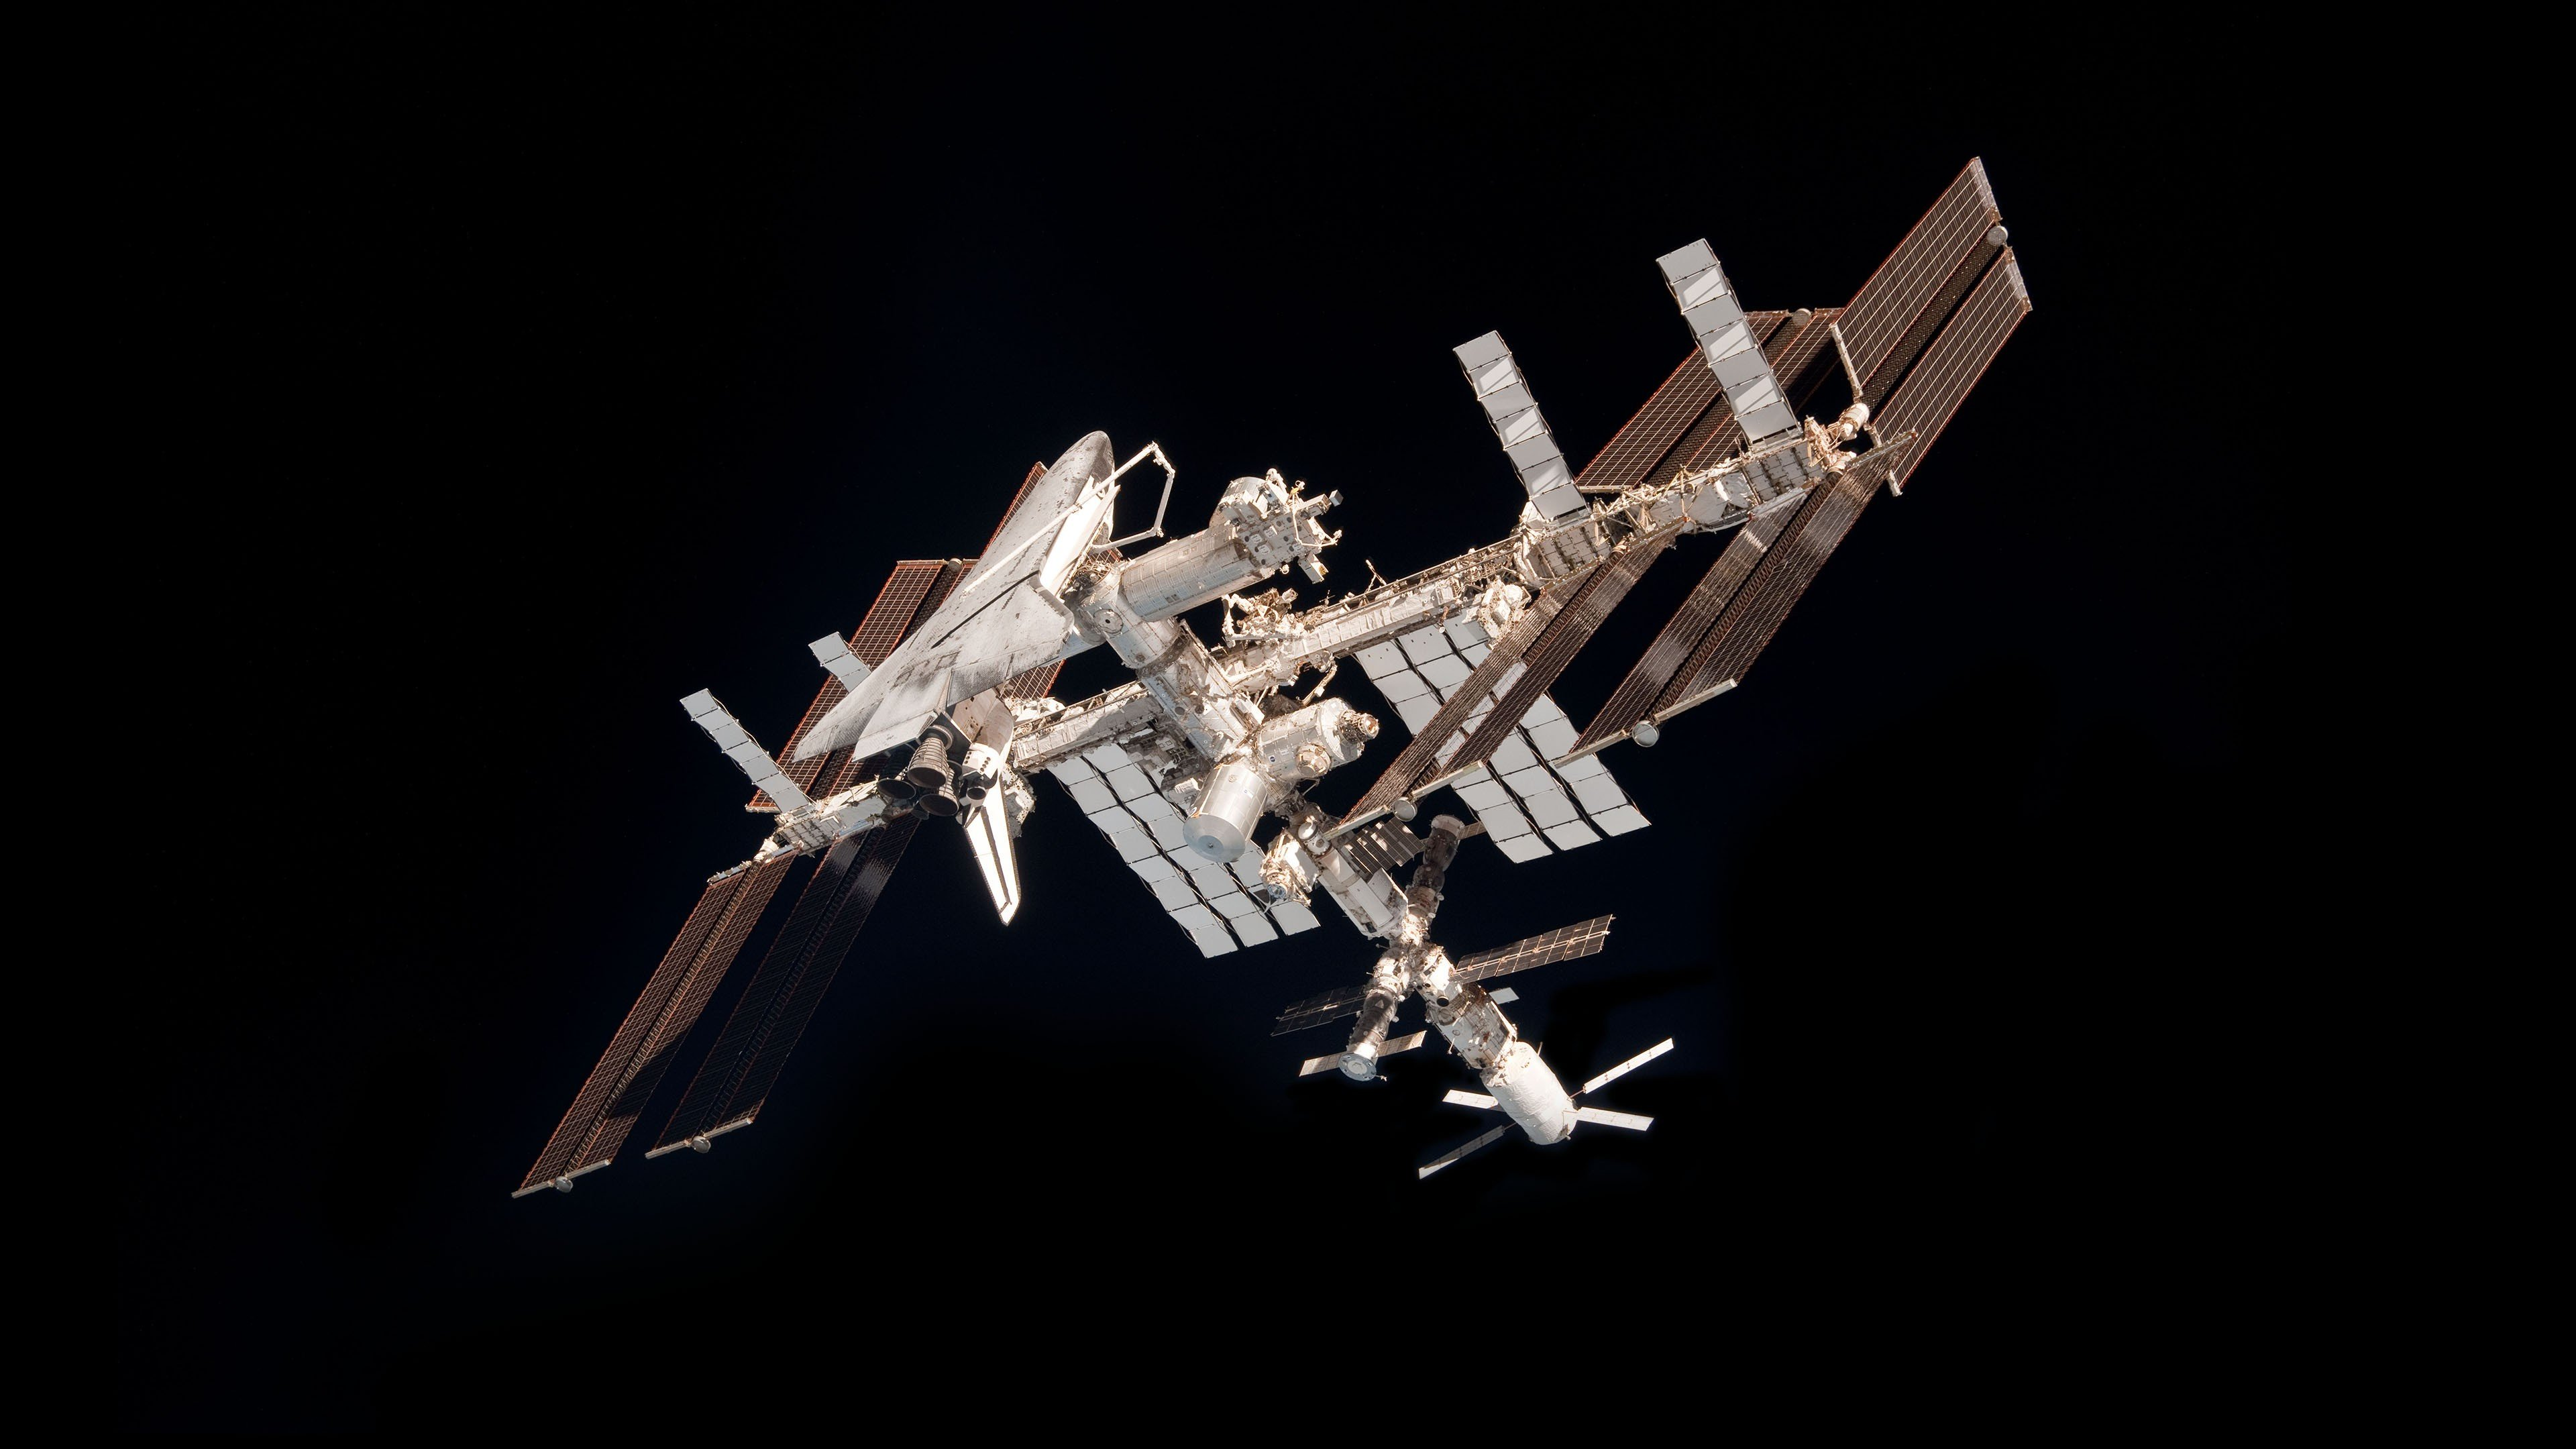 Iss Wallpapers Hd: ISS, International Space Station, Space, Minimalism HD